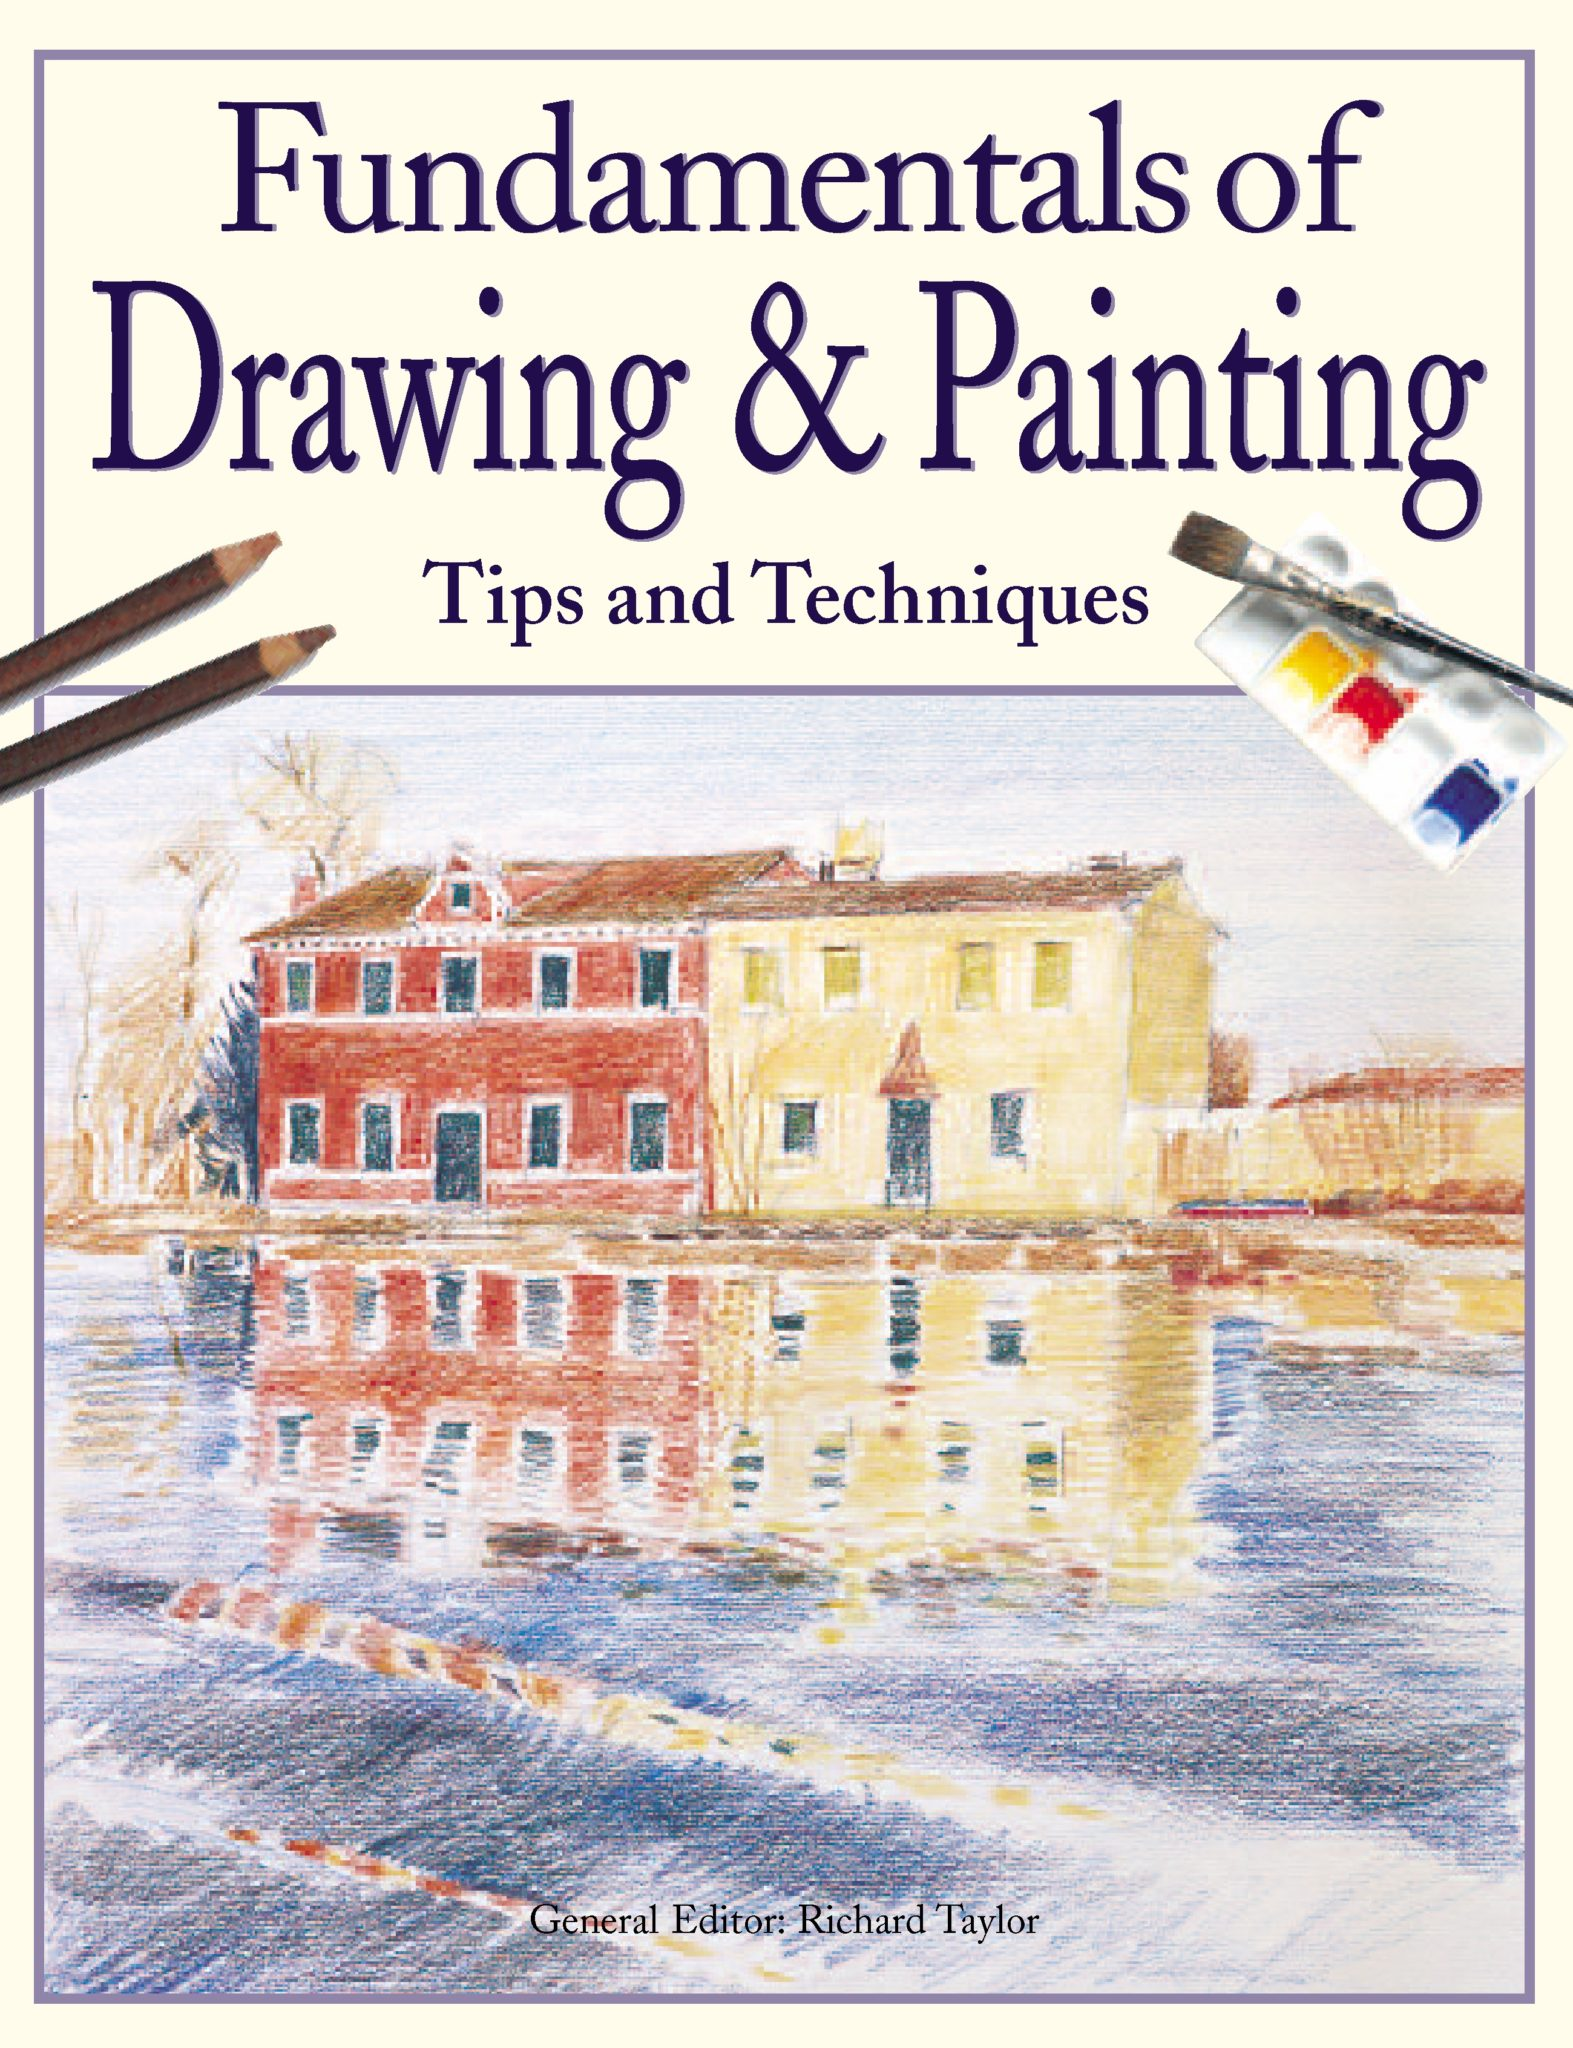 Fundamentals of Drawing & Painting